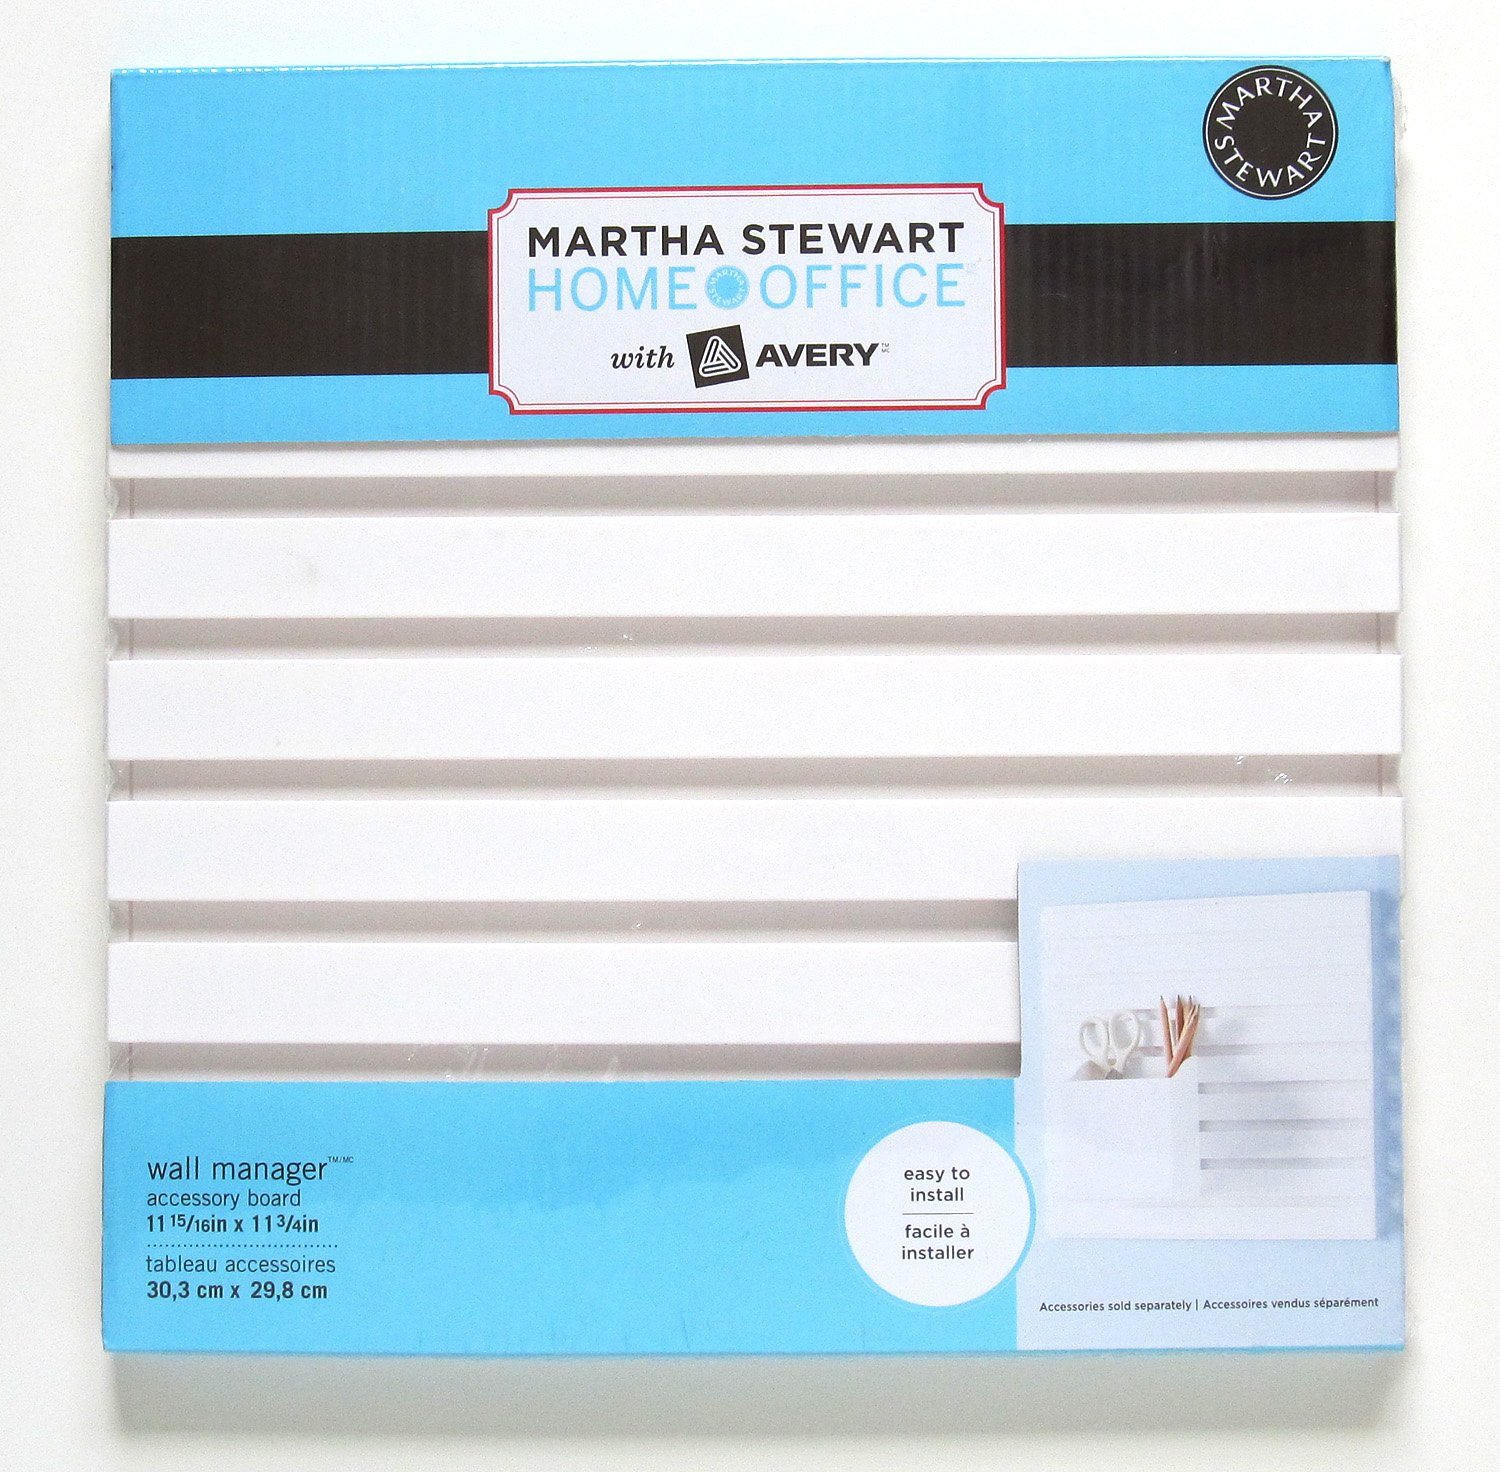 Amazon.com : Martha Stewart Home Office with Avery Wall Manager ...